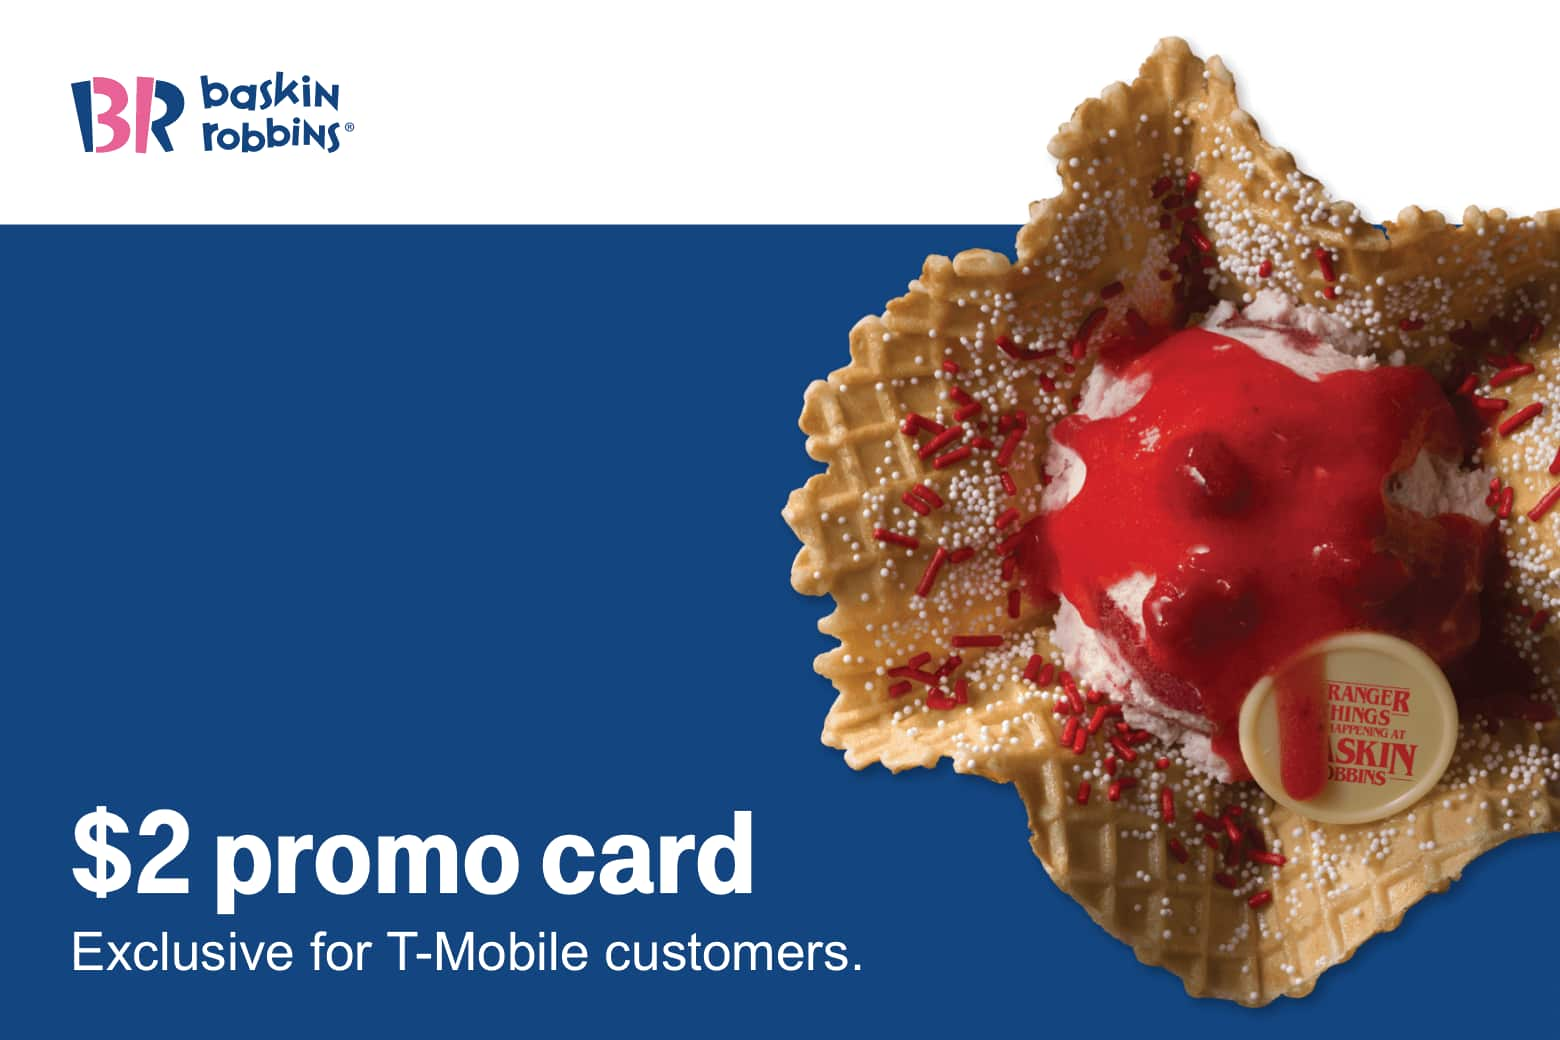 T-Mobile Customers 06/18: $2 BR31 Promo Card, $14 Bark Box